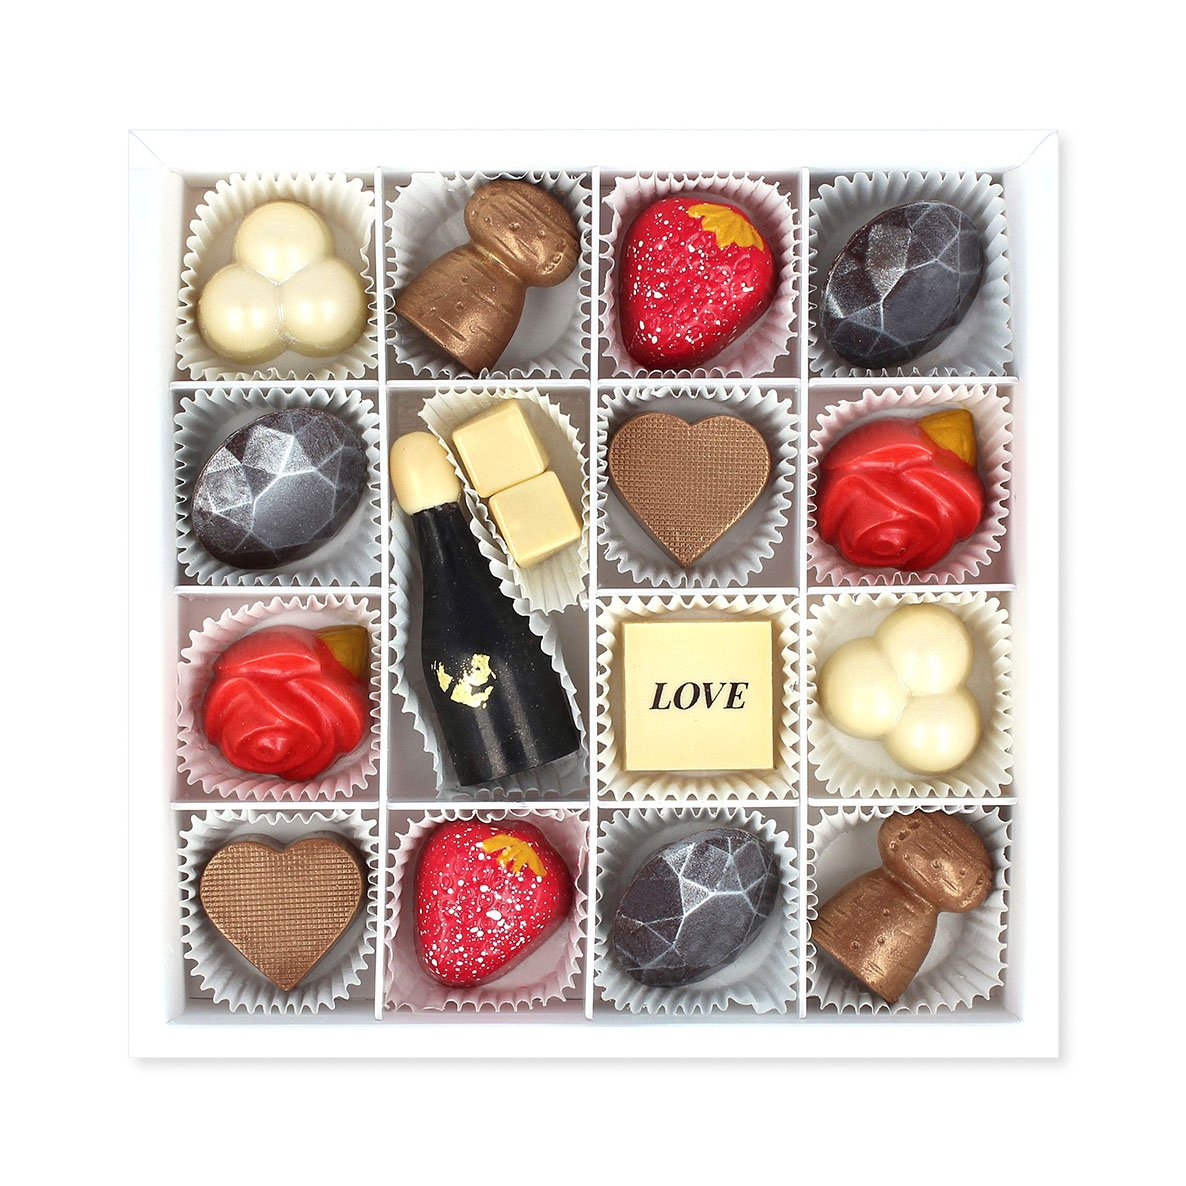 MAGGIE LOUISE CONFECTIONS - LOVESTRUCK CHOCOLATES